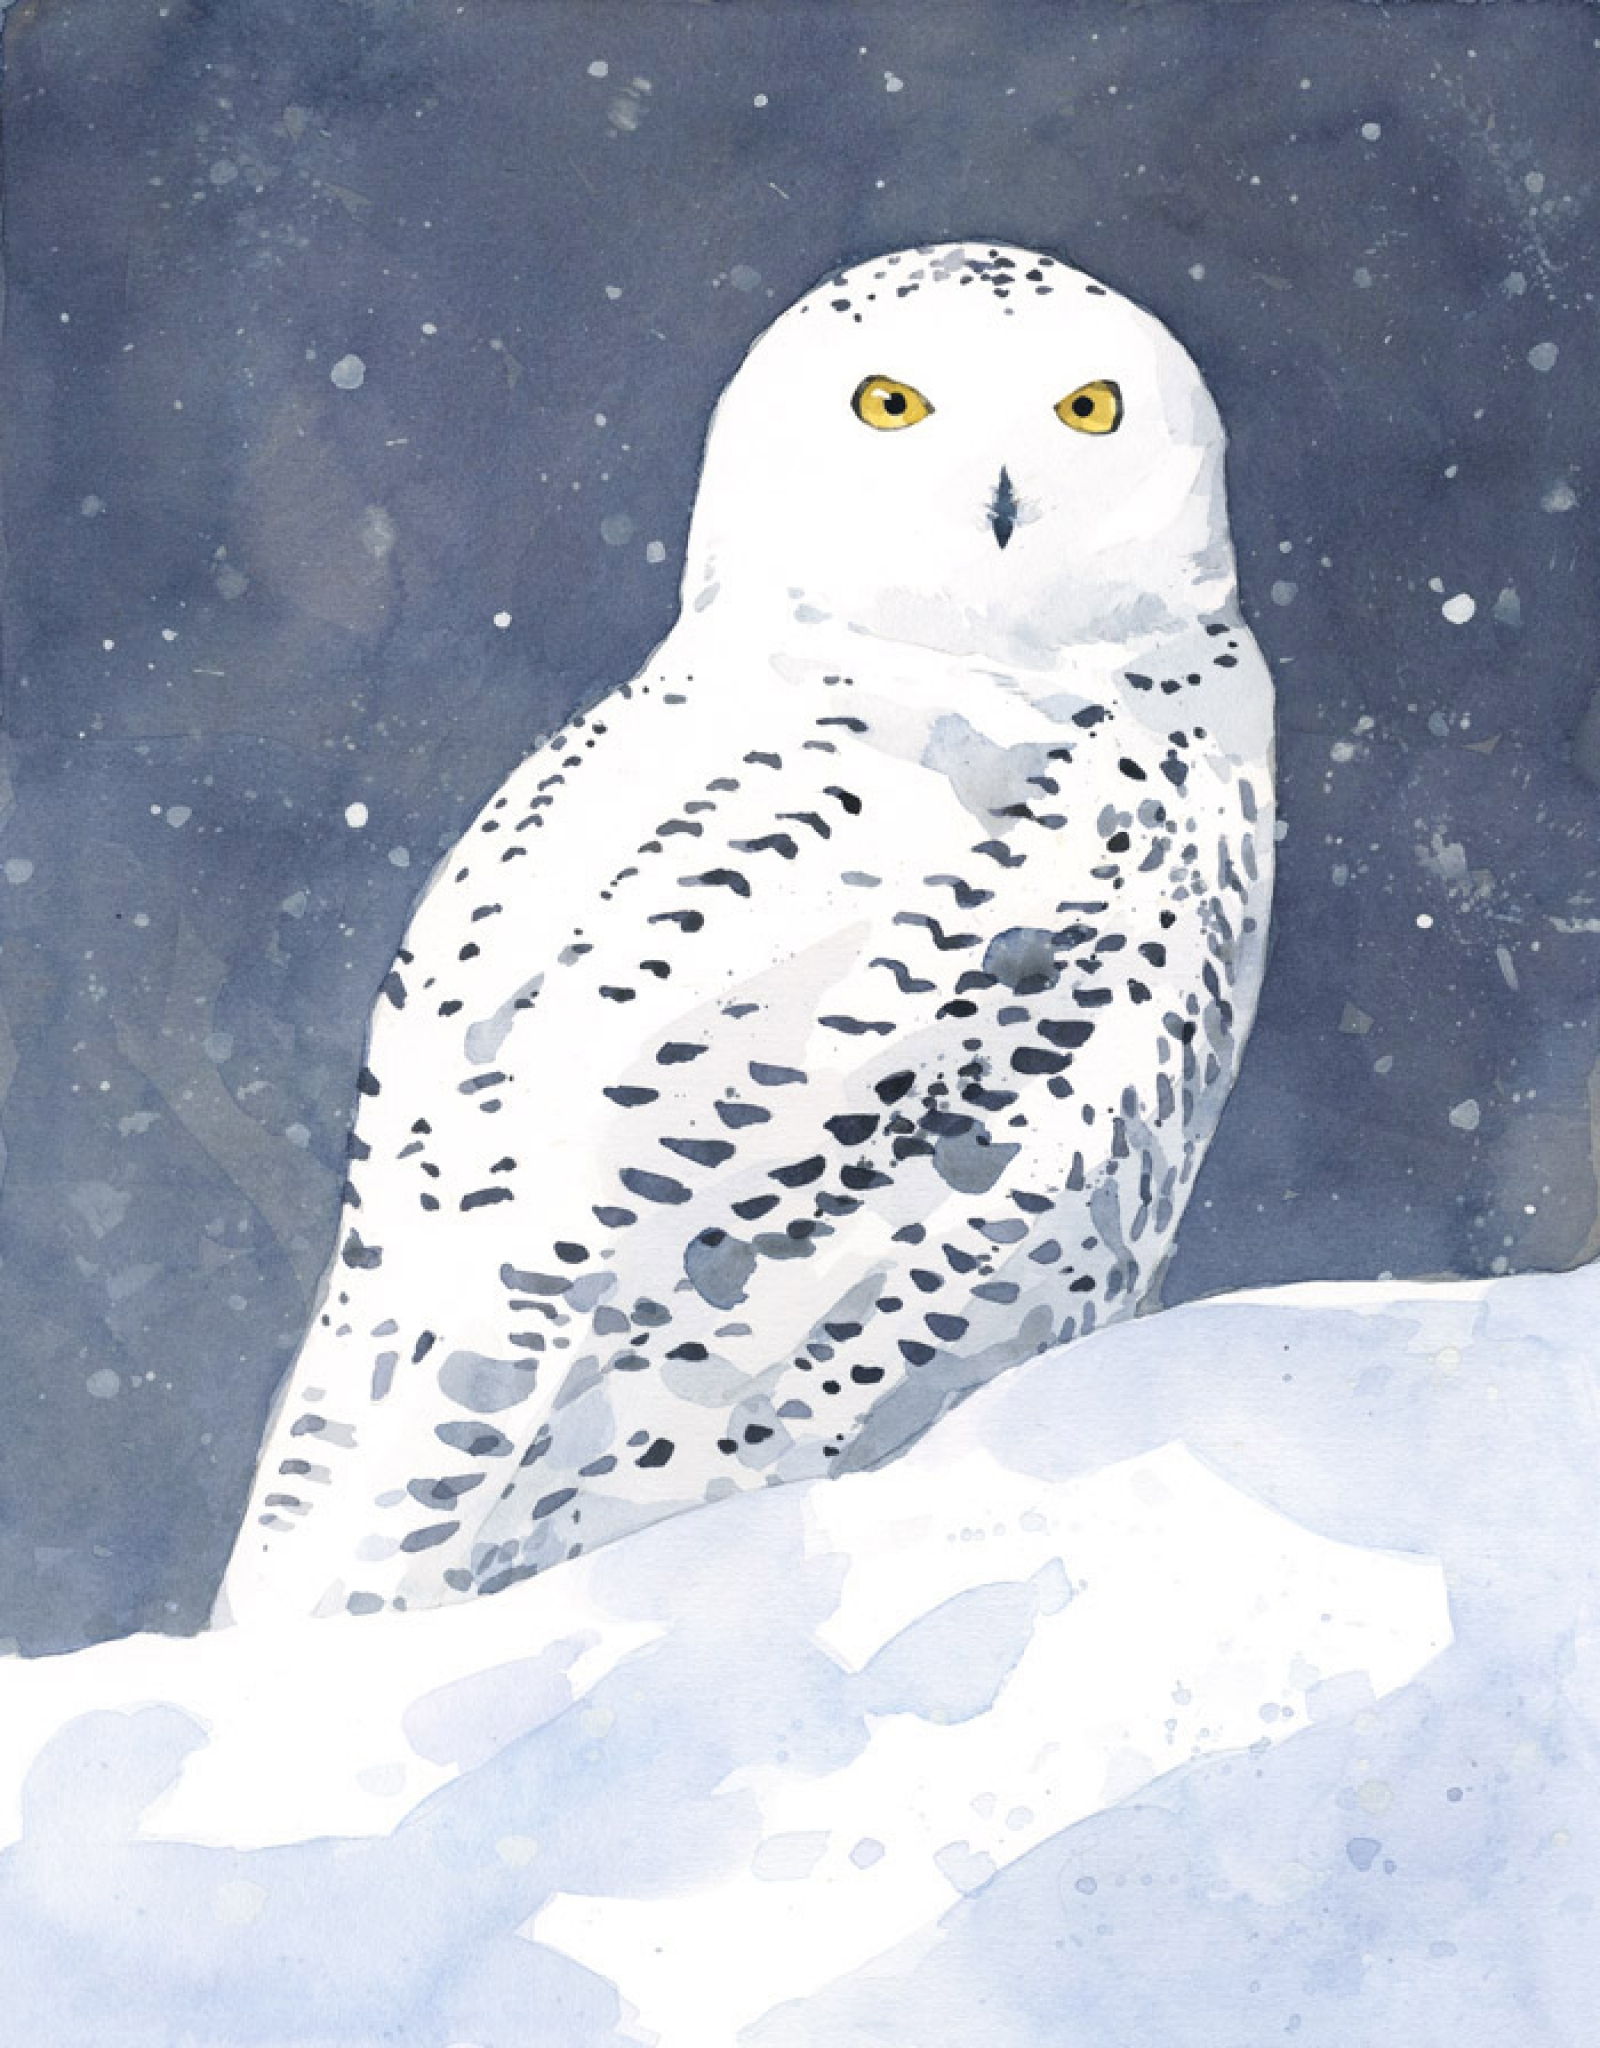 Snowy Owl Watercolor Art Print 11x14 | david scheirer watercolors